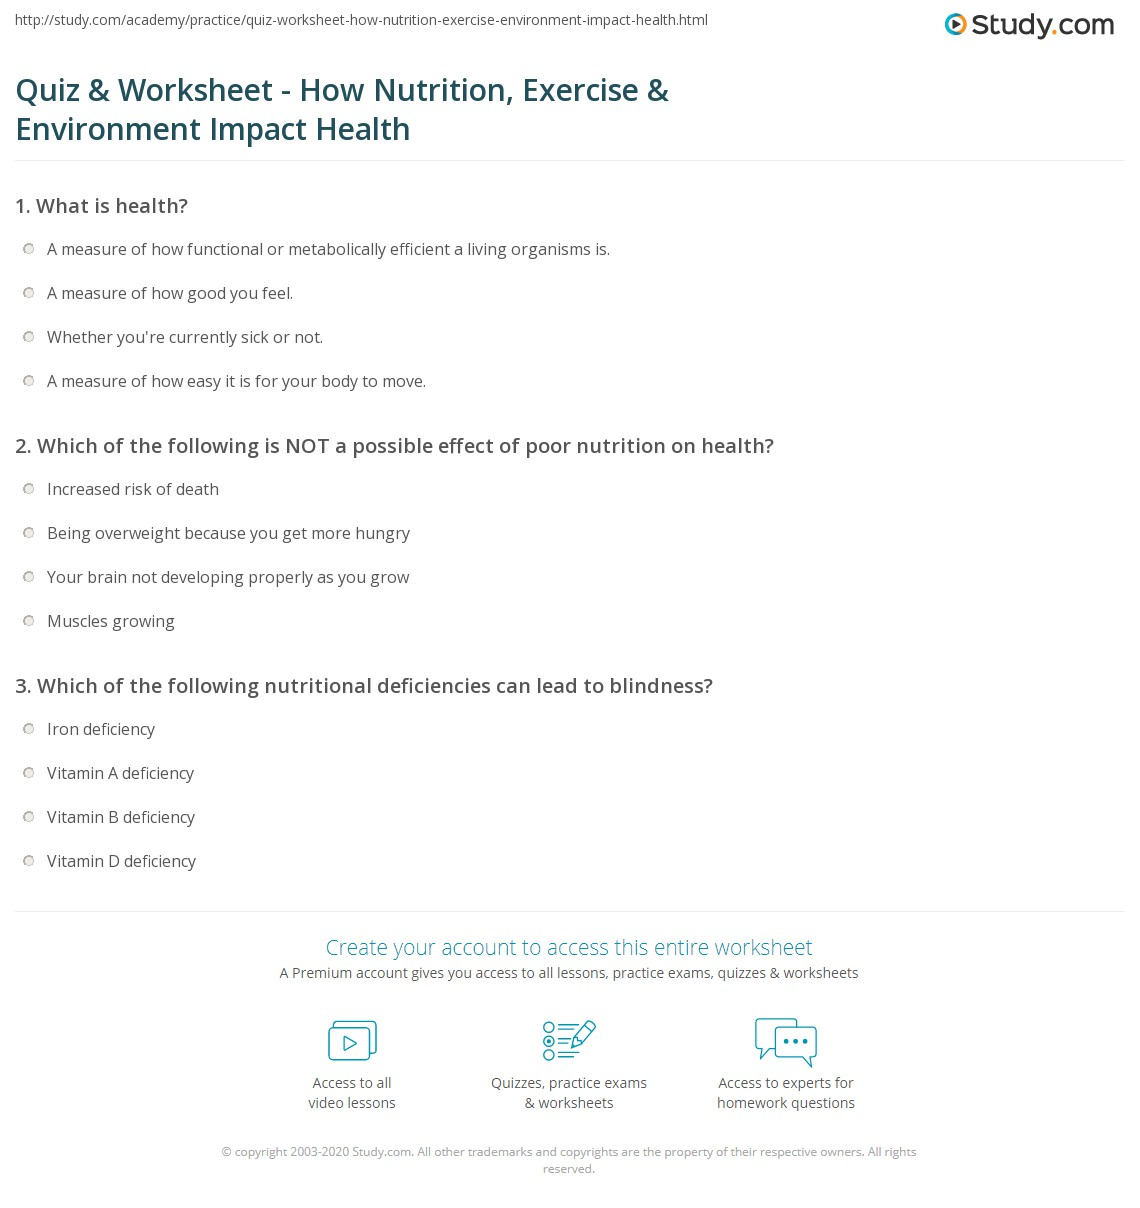 Quiz & Worksheet - How Nutrition, Exercise & Environment Impact ...